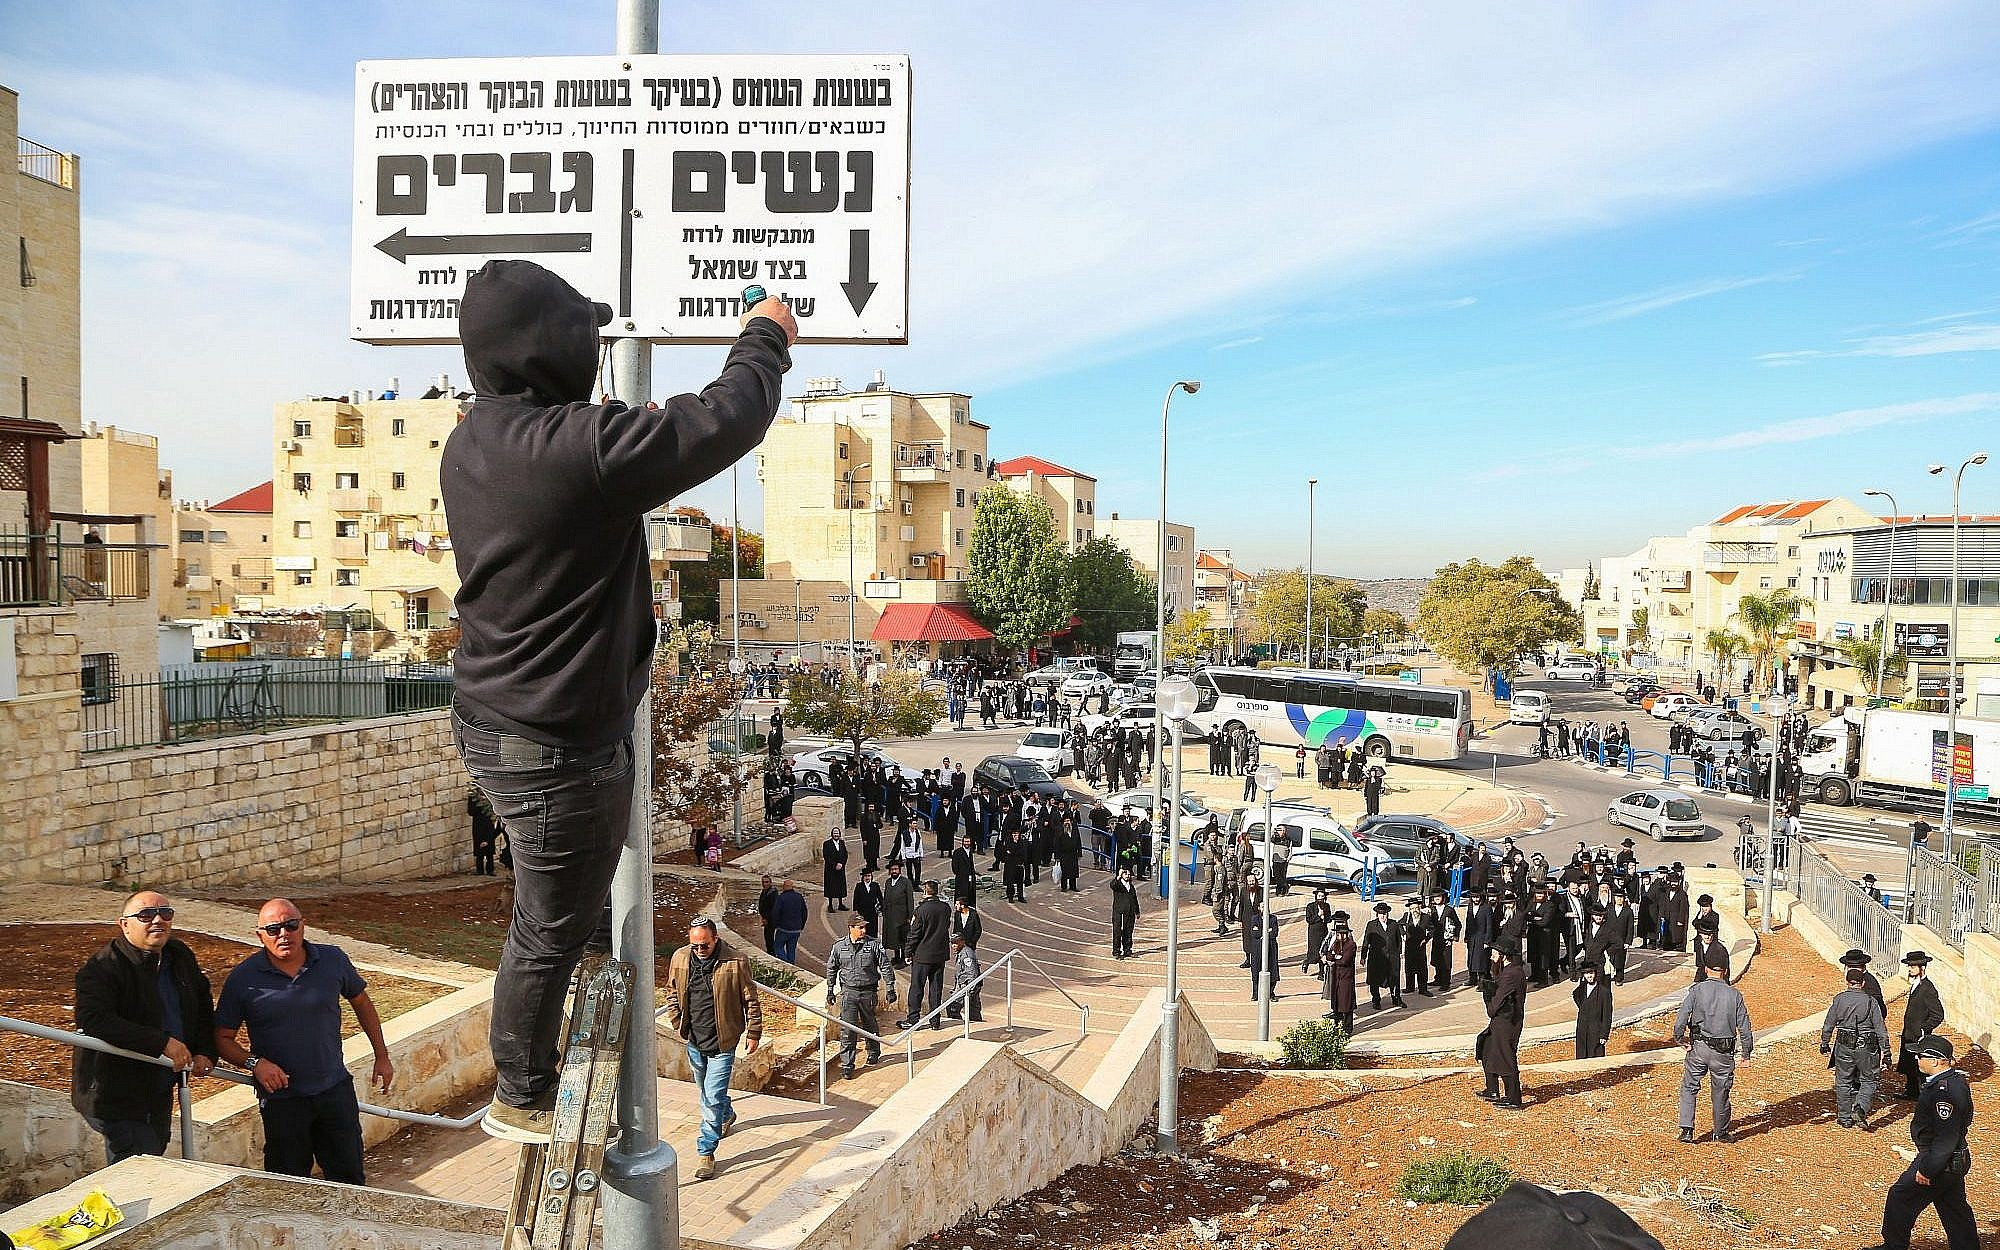 Orthodox Beit Shemesh: We Are Not The Same People Anymore